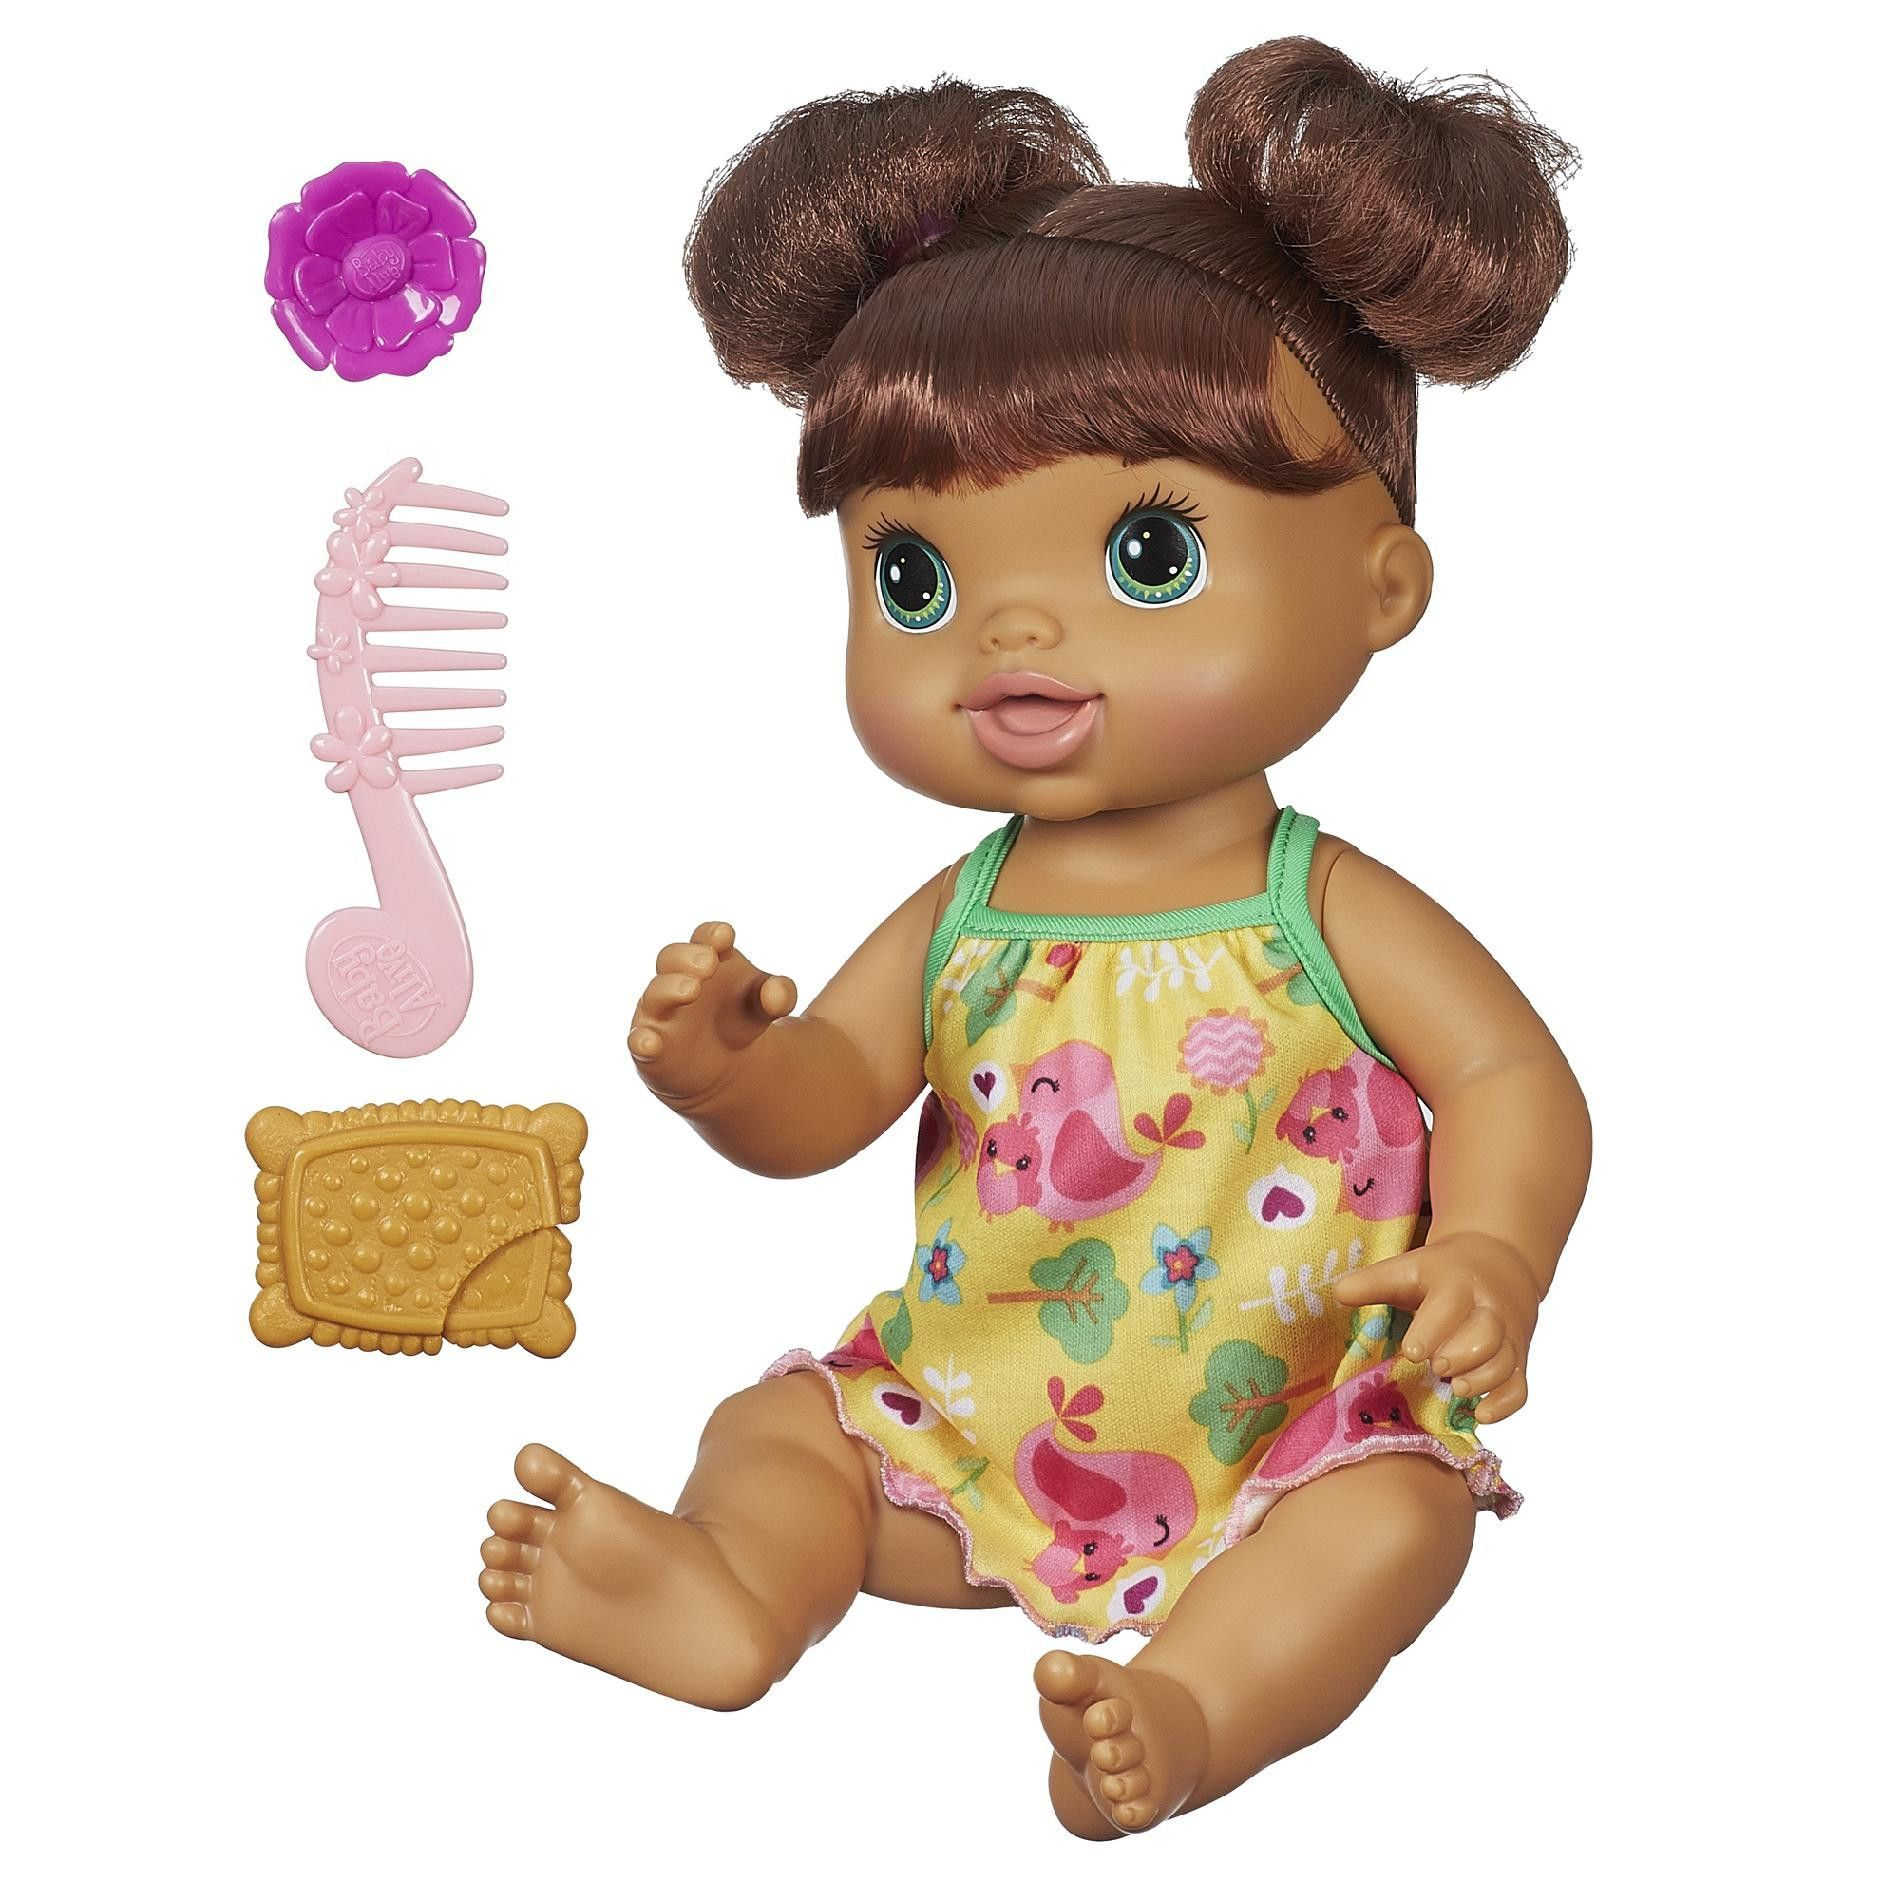 Baby Alive Pretty In Pigtails Baby Doll Brown Hair Baby Alive Baby Alive Dolls Baby Dolls